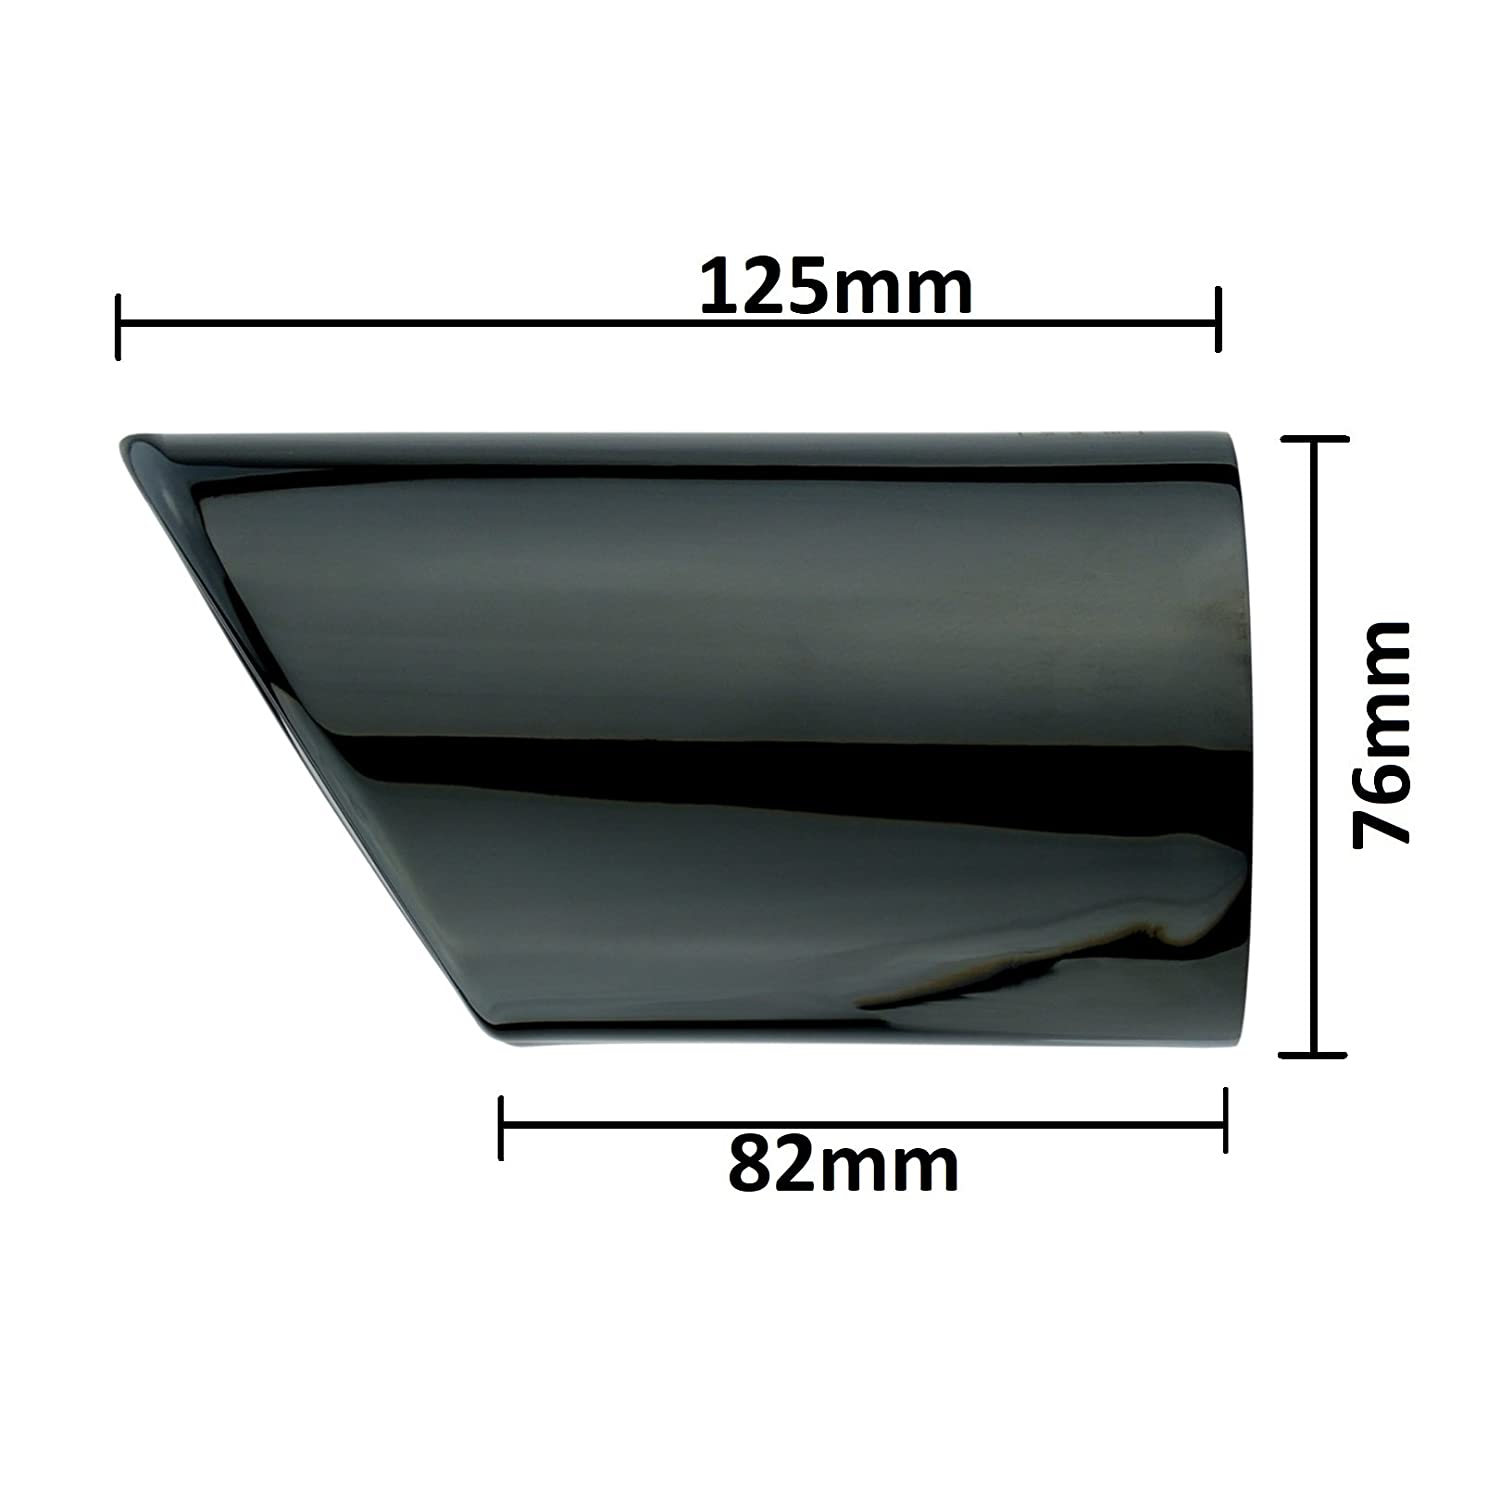 set of 2 L/&P A295 black//chrome polished plug and play tailpipe stainless steel tailpipe trim